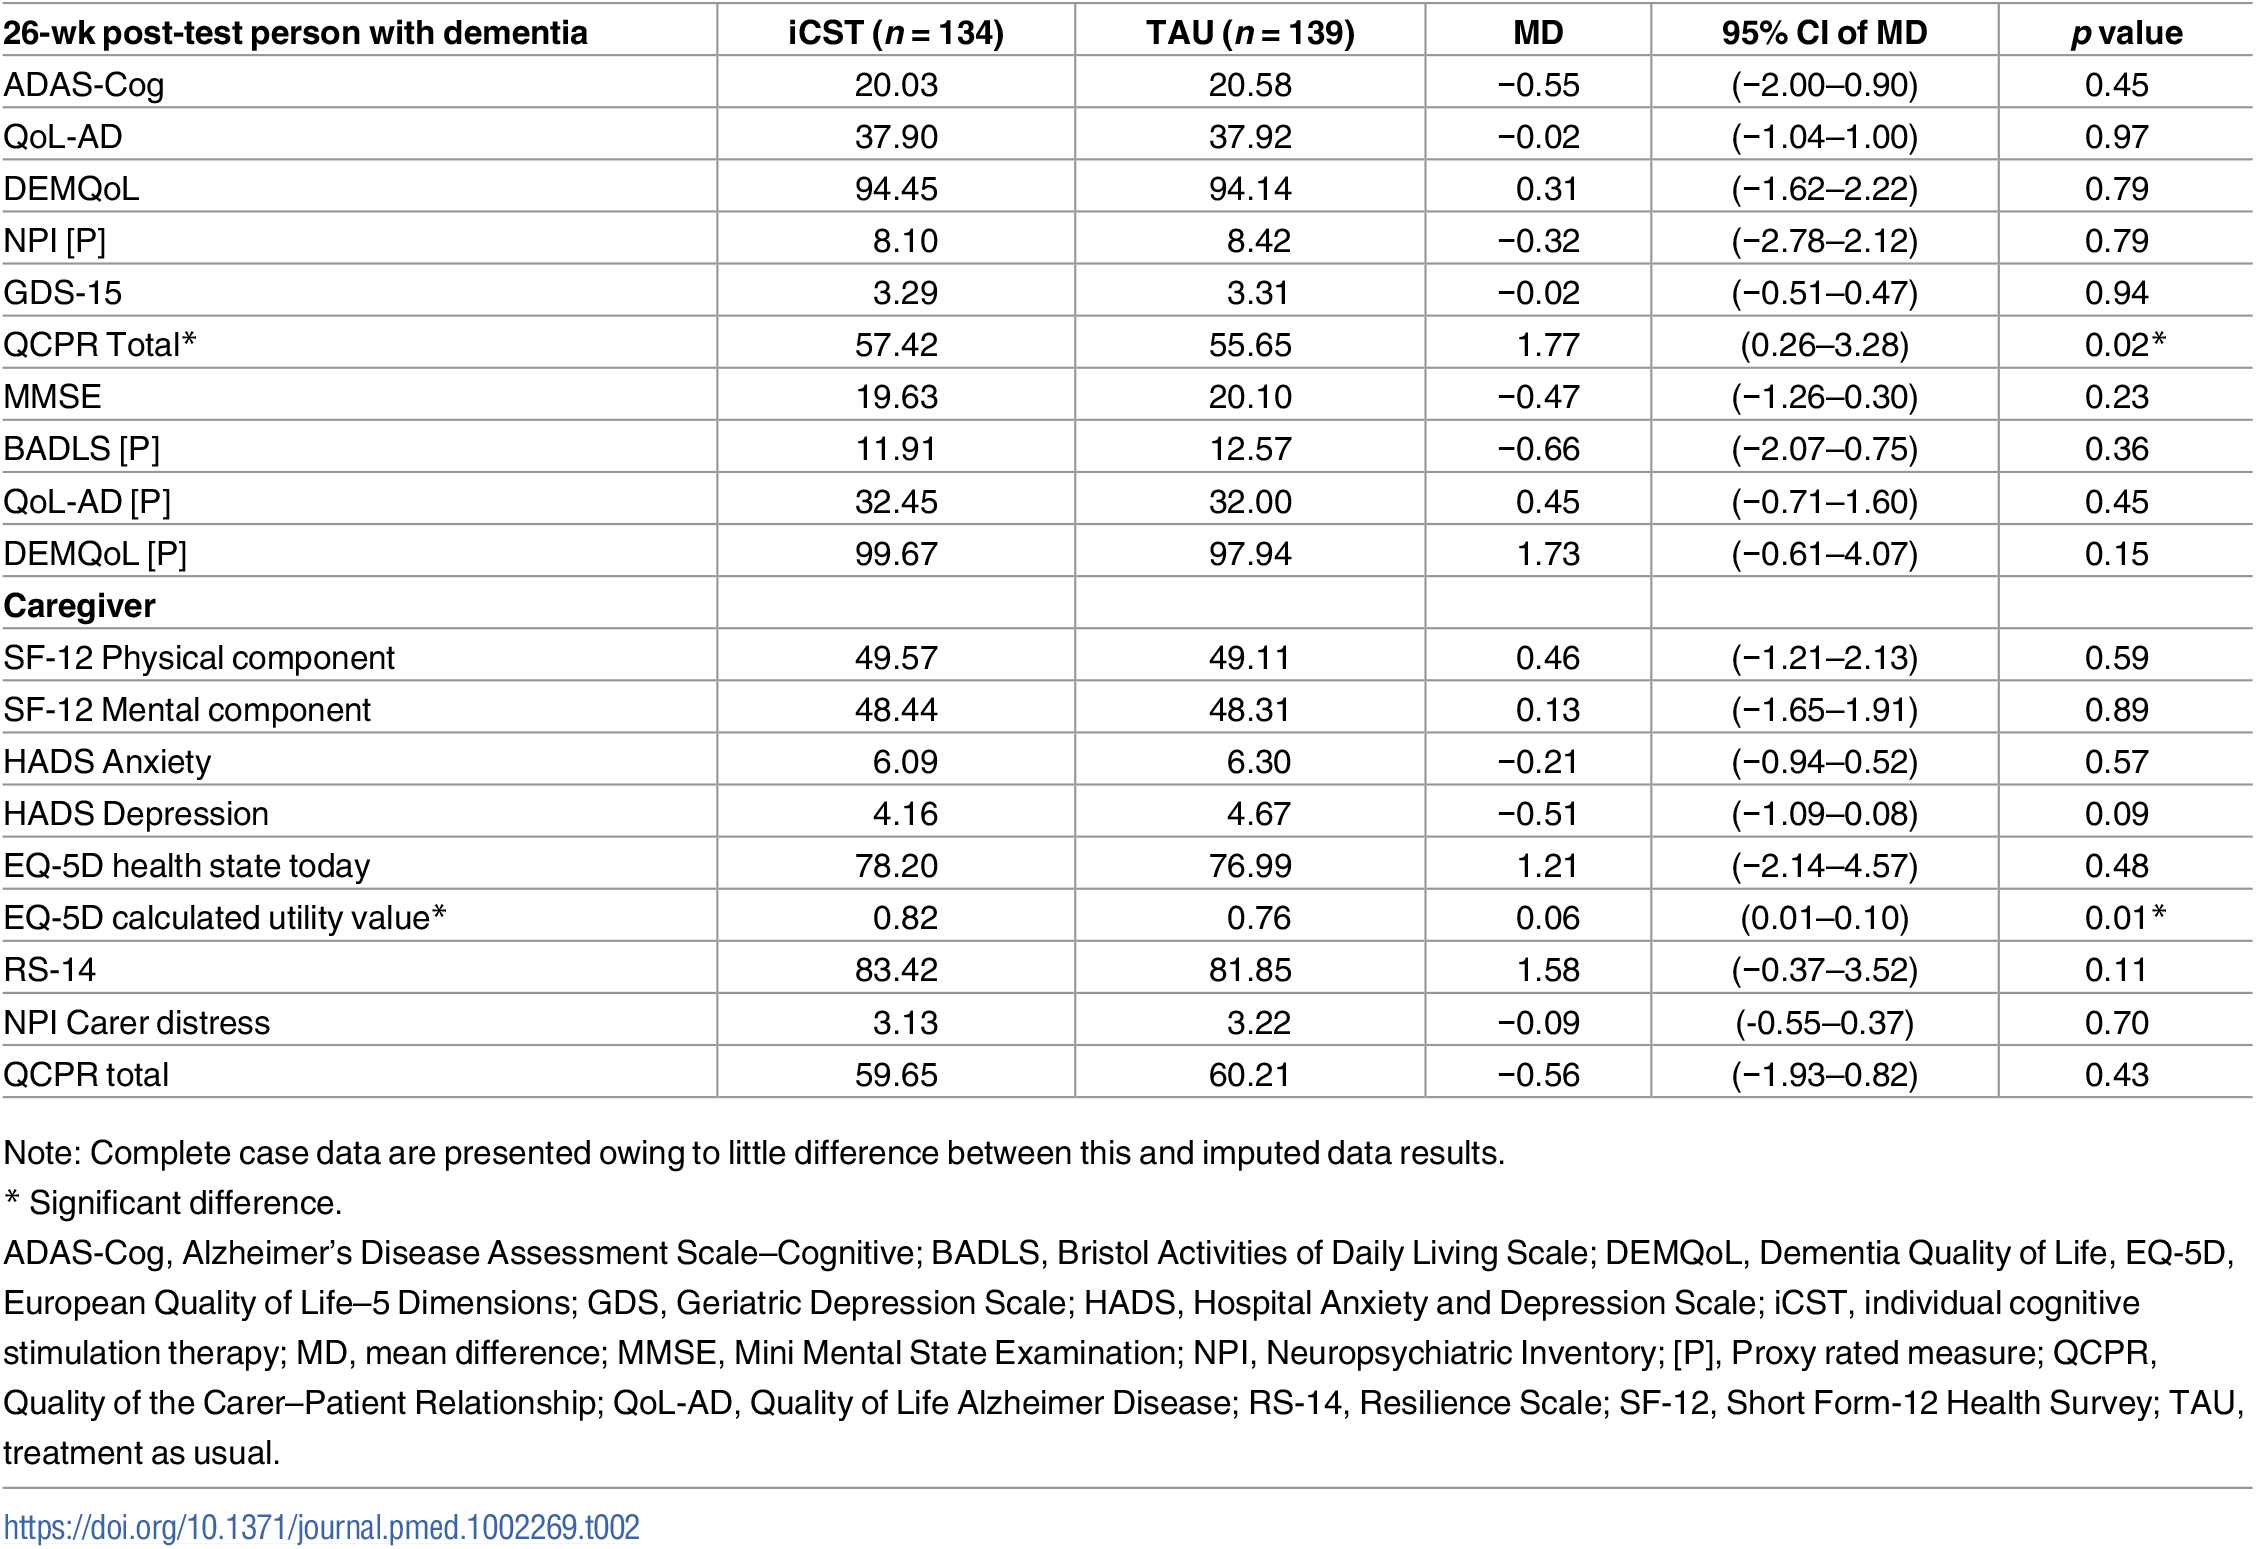 Outcome measures at 26-wk post-test by iCST versus TAU: Complete case analysis, adjusting for BL outcome measures, marital status, centre, age, and anticholinesterase inhibitors.